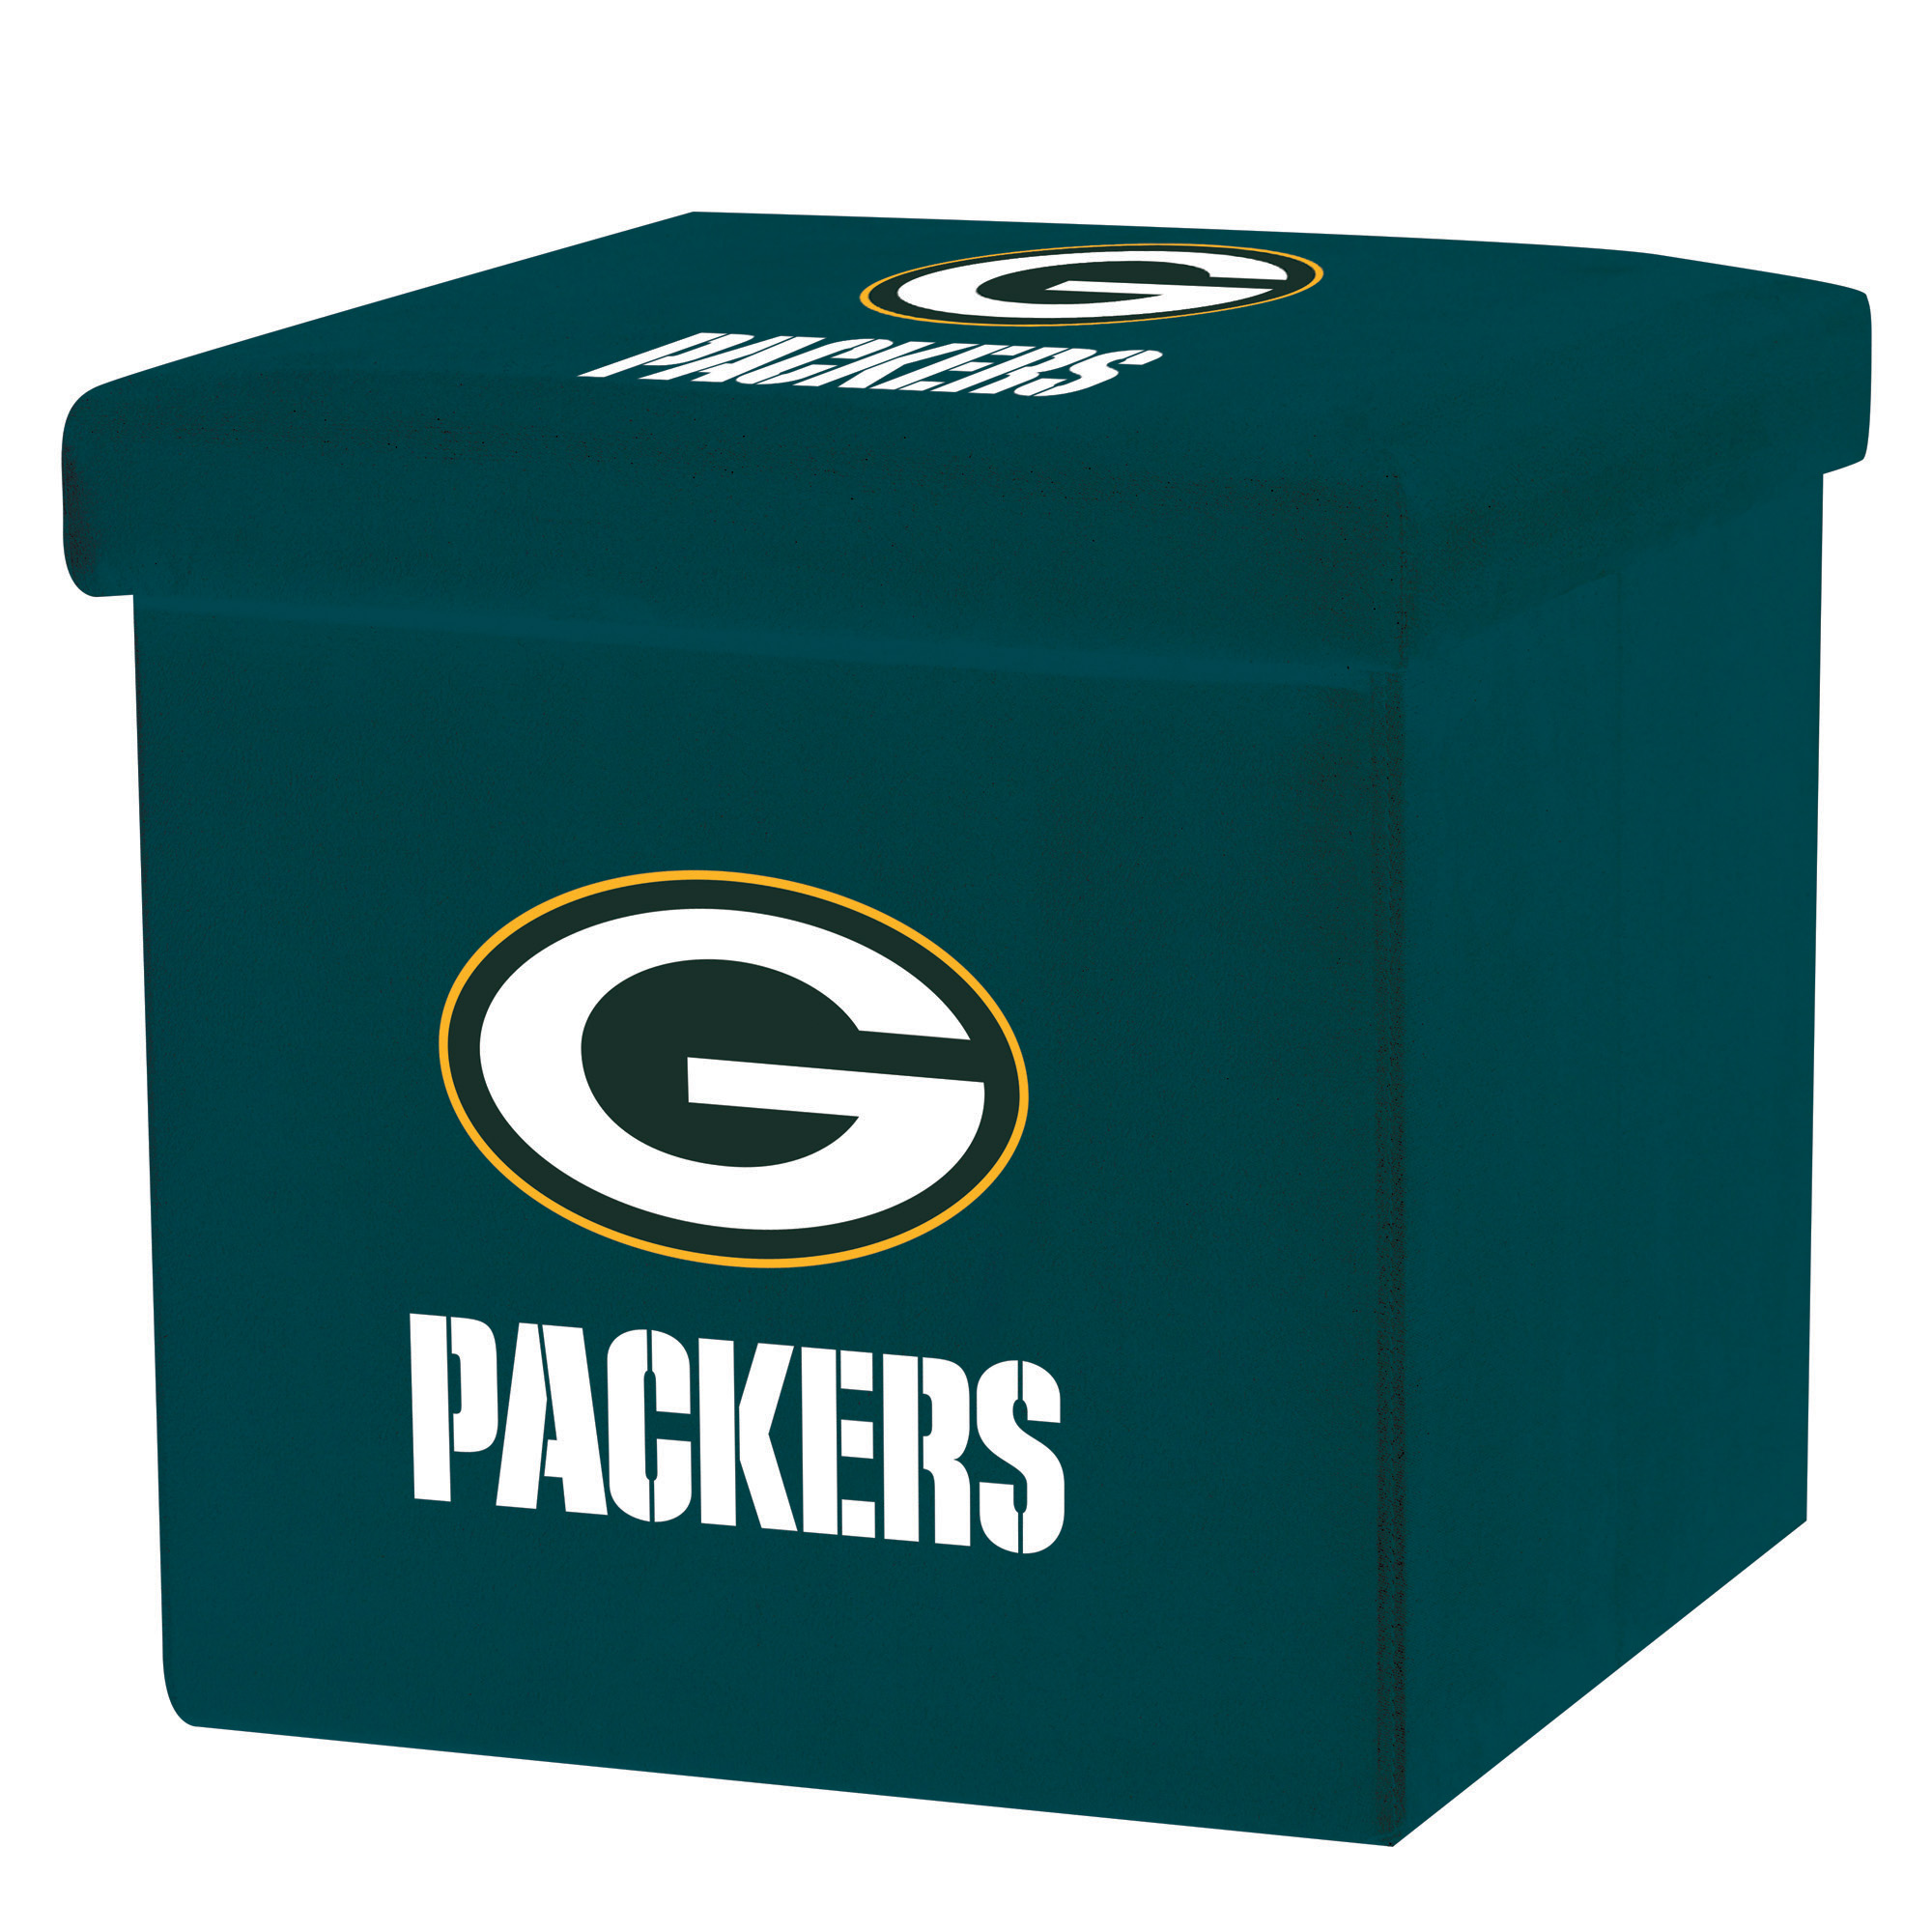 Franklin Sports NFL Green Bay Packers Storage Ottoman with Detachable Lid